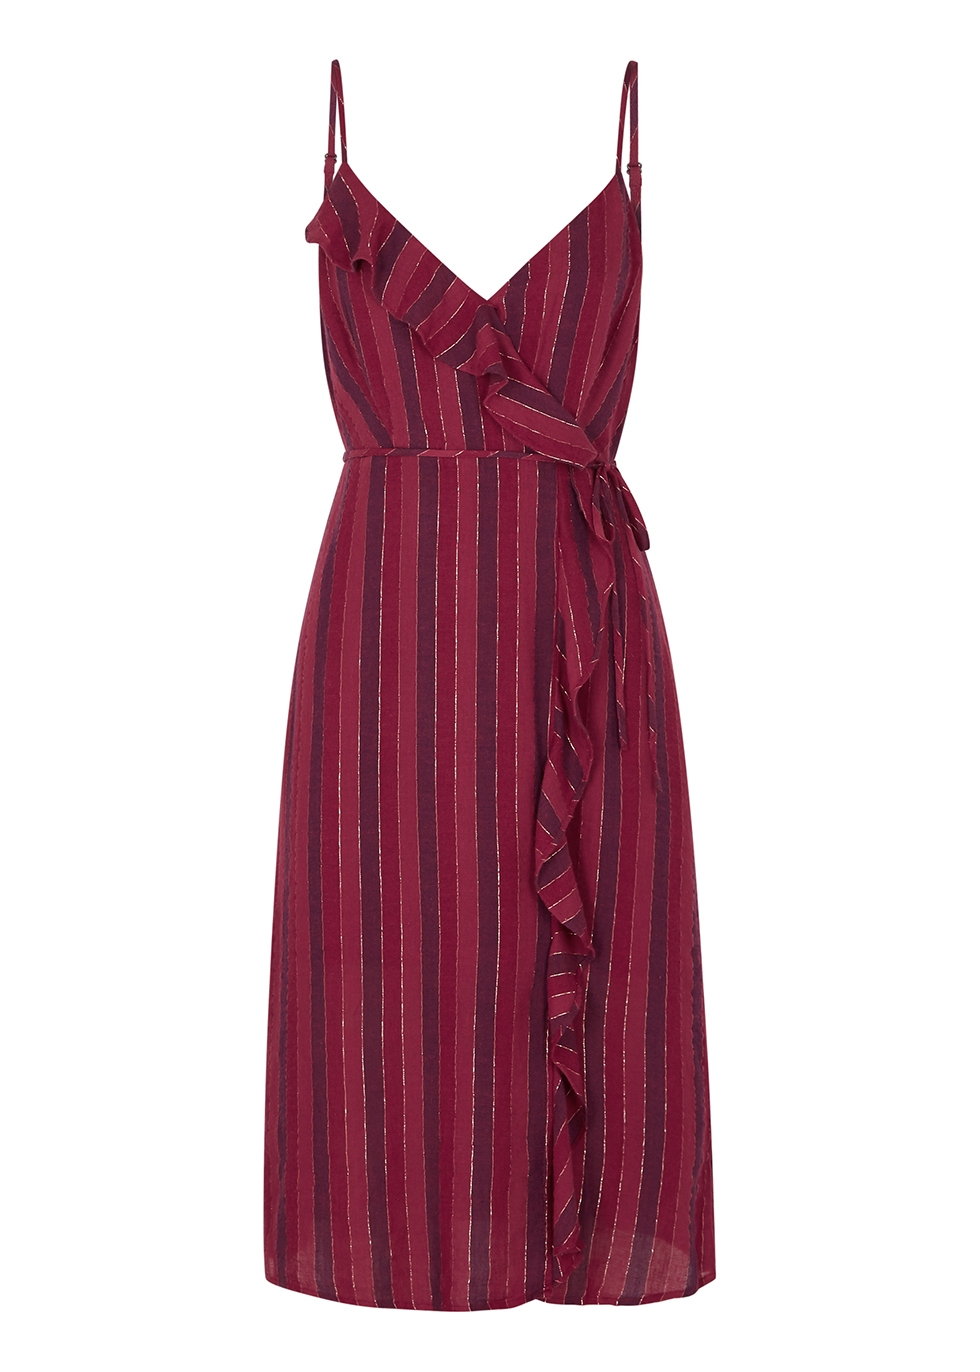 Ariel striped ruffle-trimmed dress - Rails